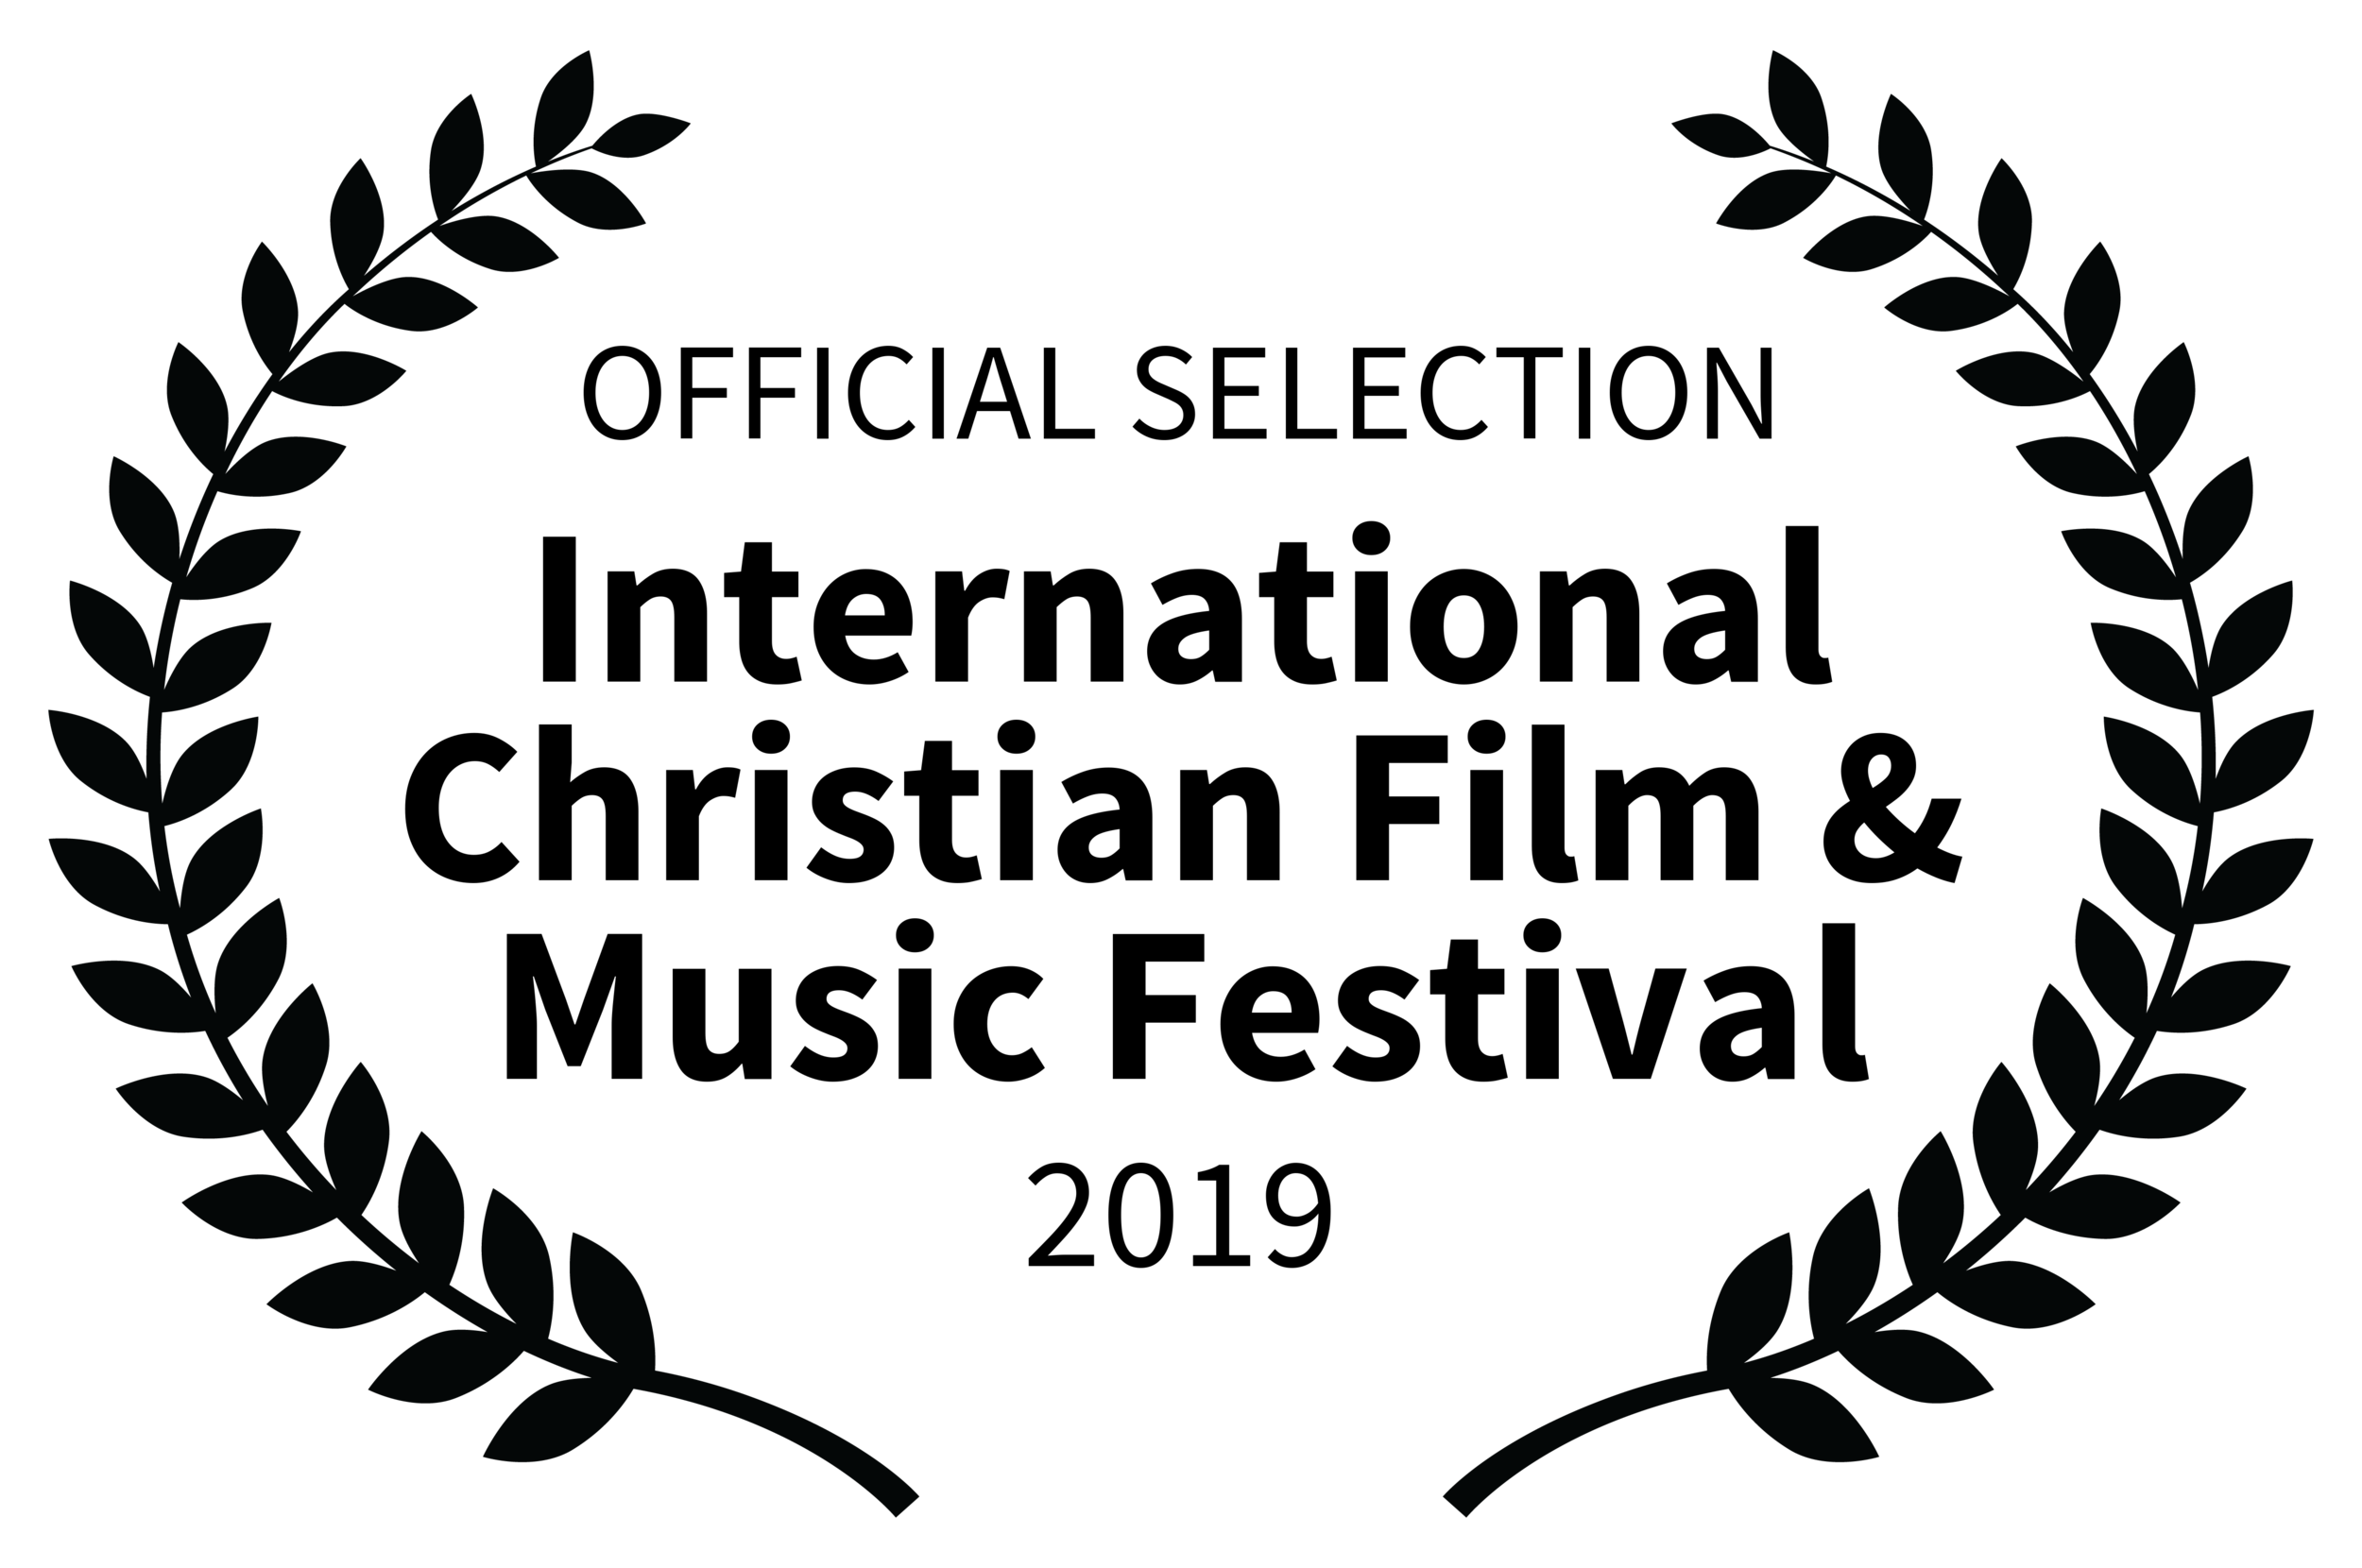 OFFICIALSELECTION-InternationalChristianFilmMusicFestival-2019 (2).png